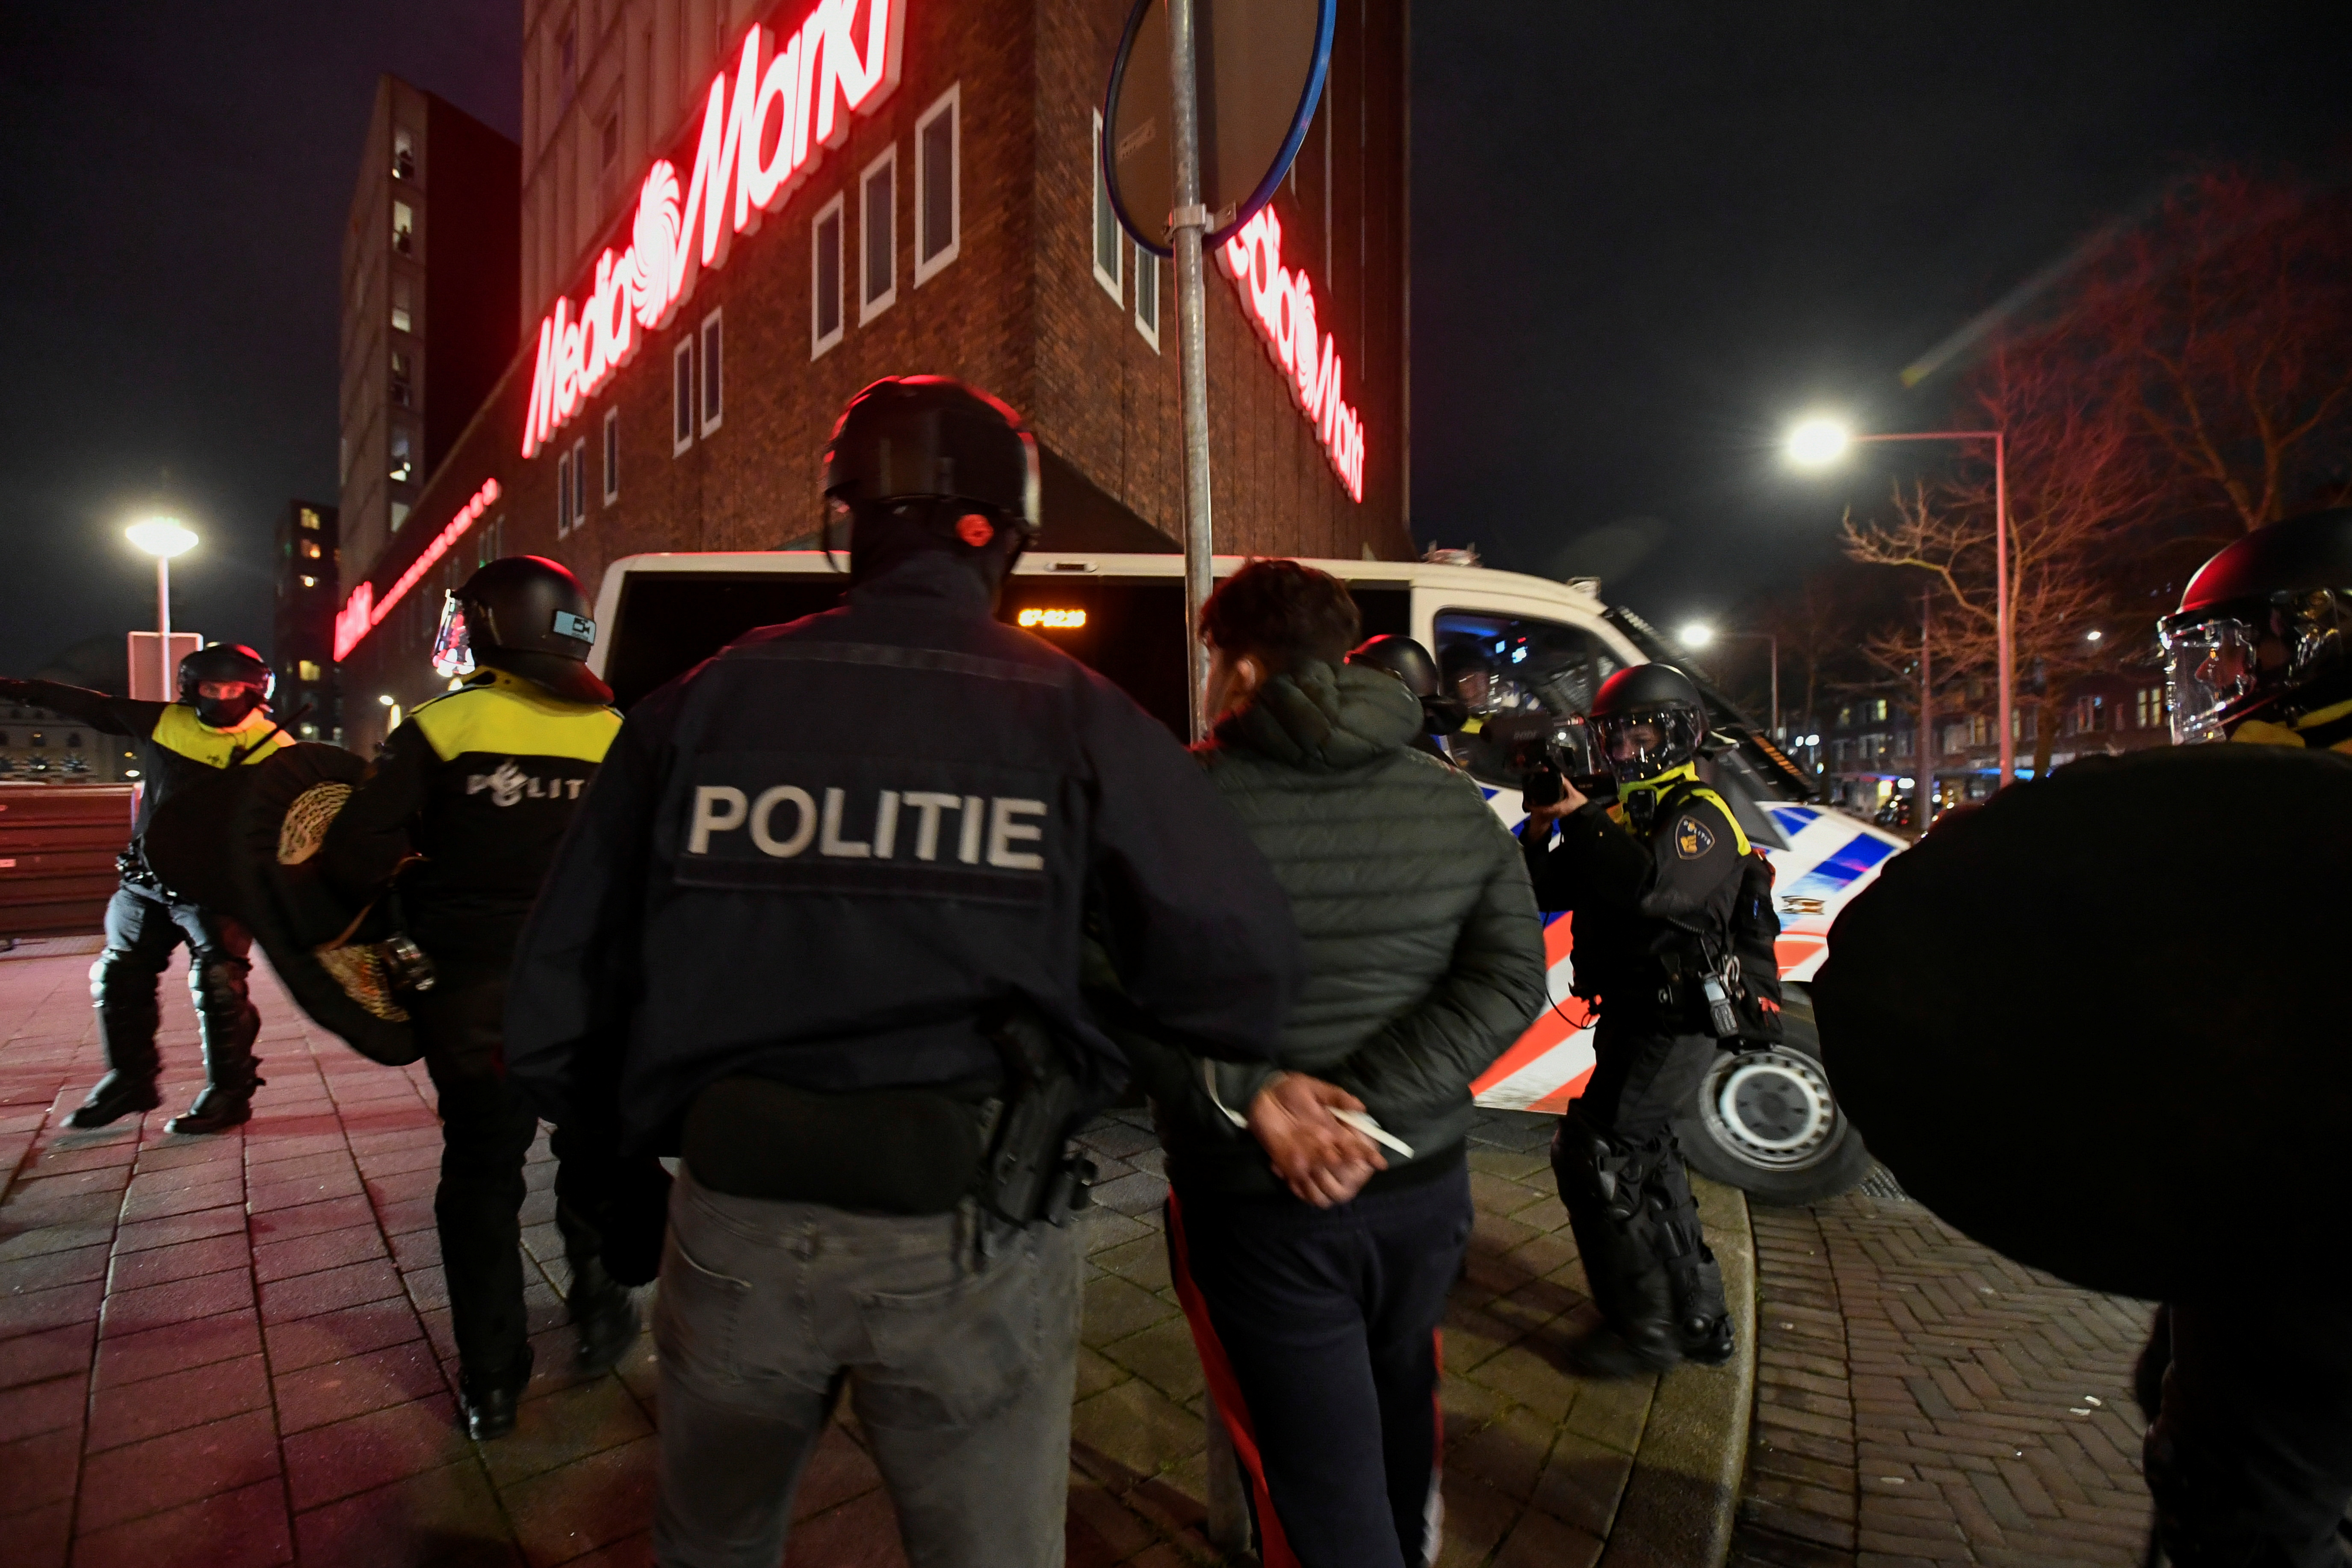 Police officers detain a demonstrator protesting against restrictions put in place to curb the spread of the coronavirus disease (COVID-19) in Rotterdam, Netherlands, January 26, 2021. REUTERS/Stringer